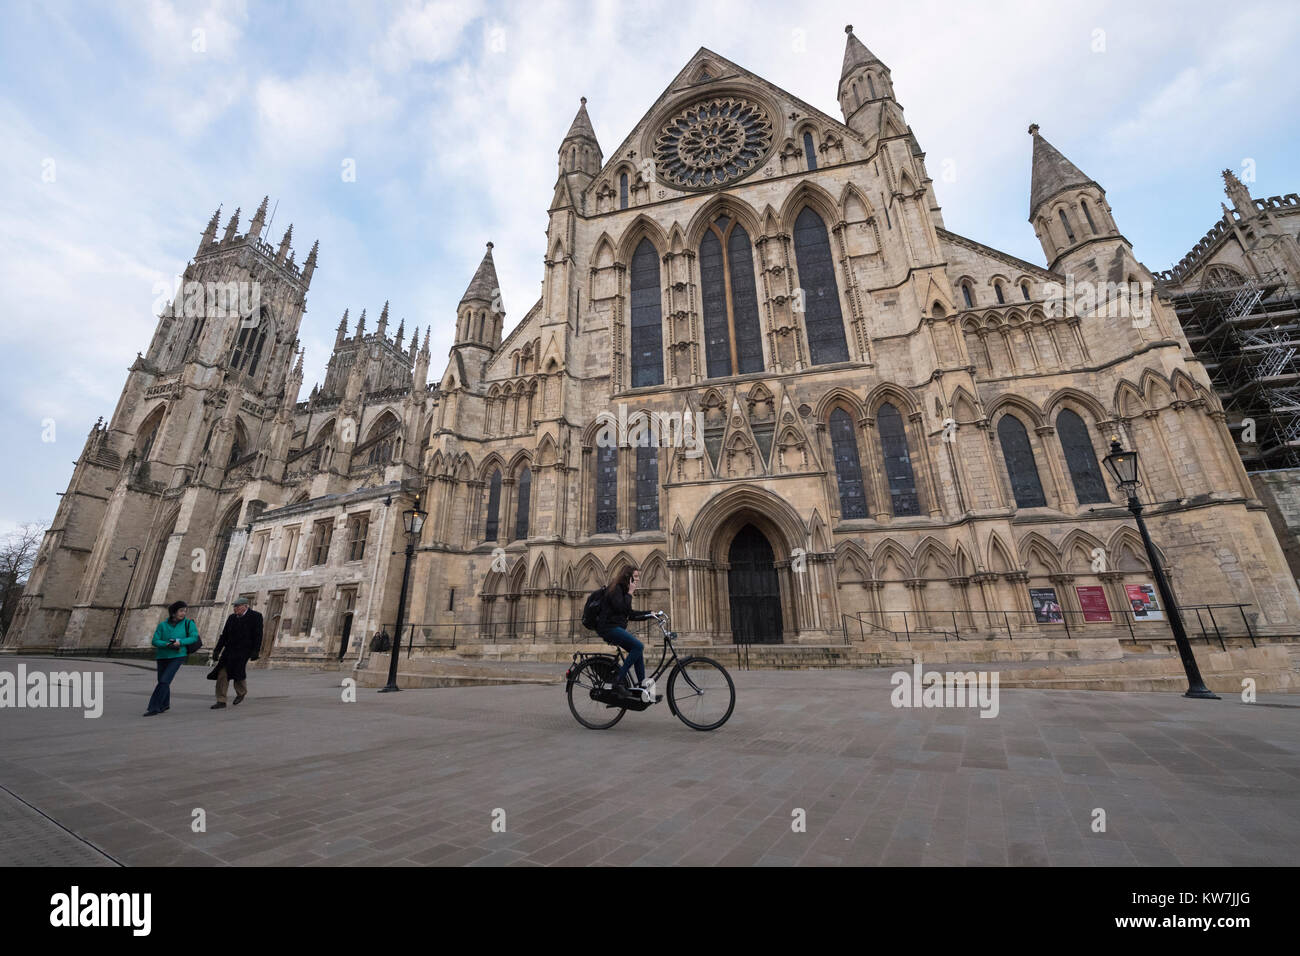 York centre - south entrance to magnificent York Minster from piazza where people walk & female on phone cycles - Stock Image